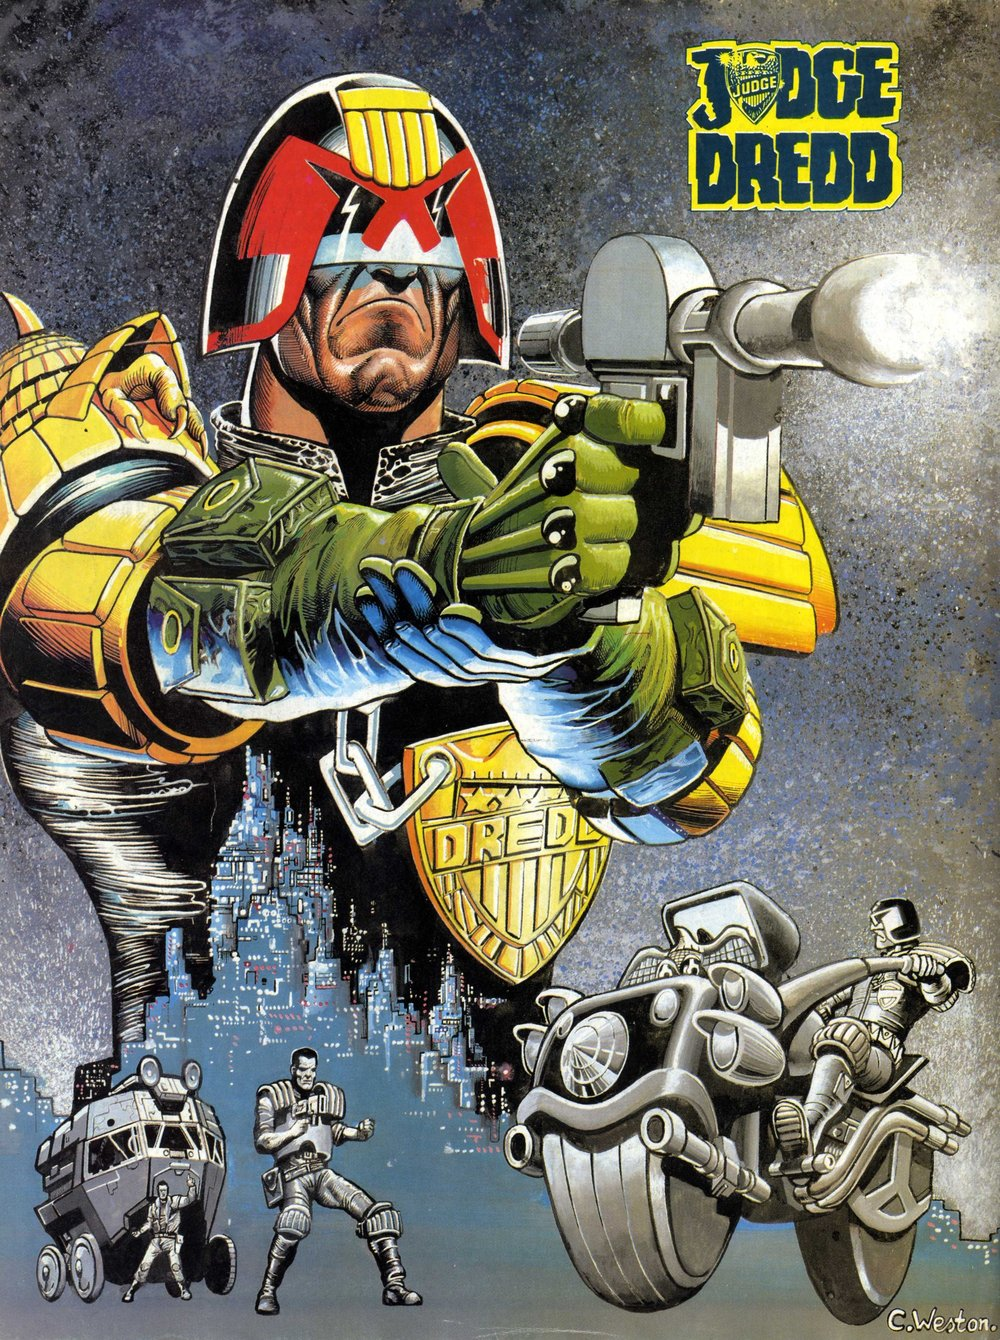 Judge Dredd poster: Chris Weston (artist)